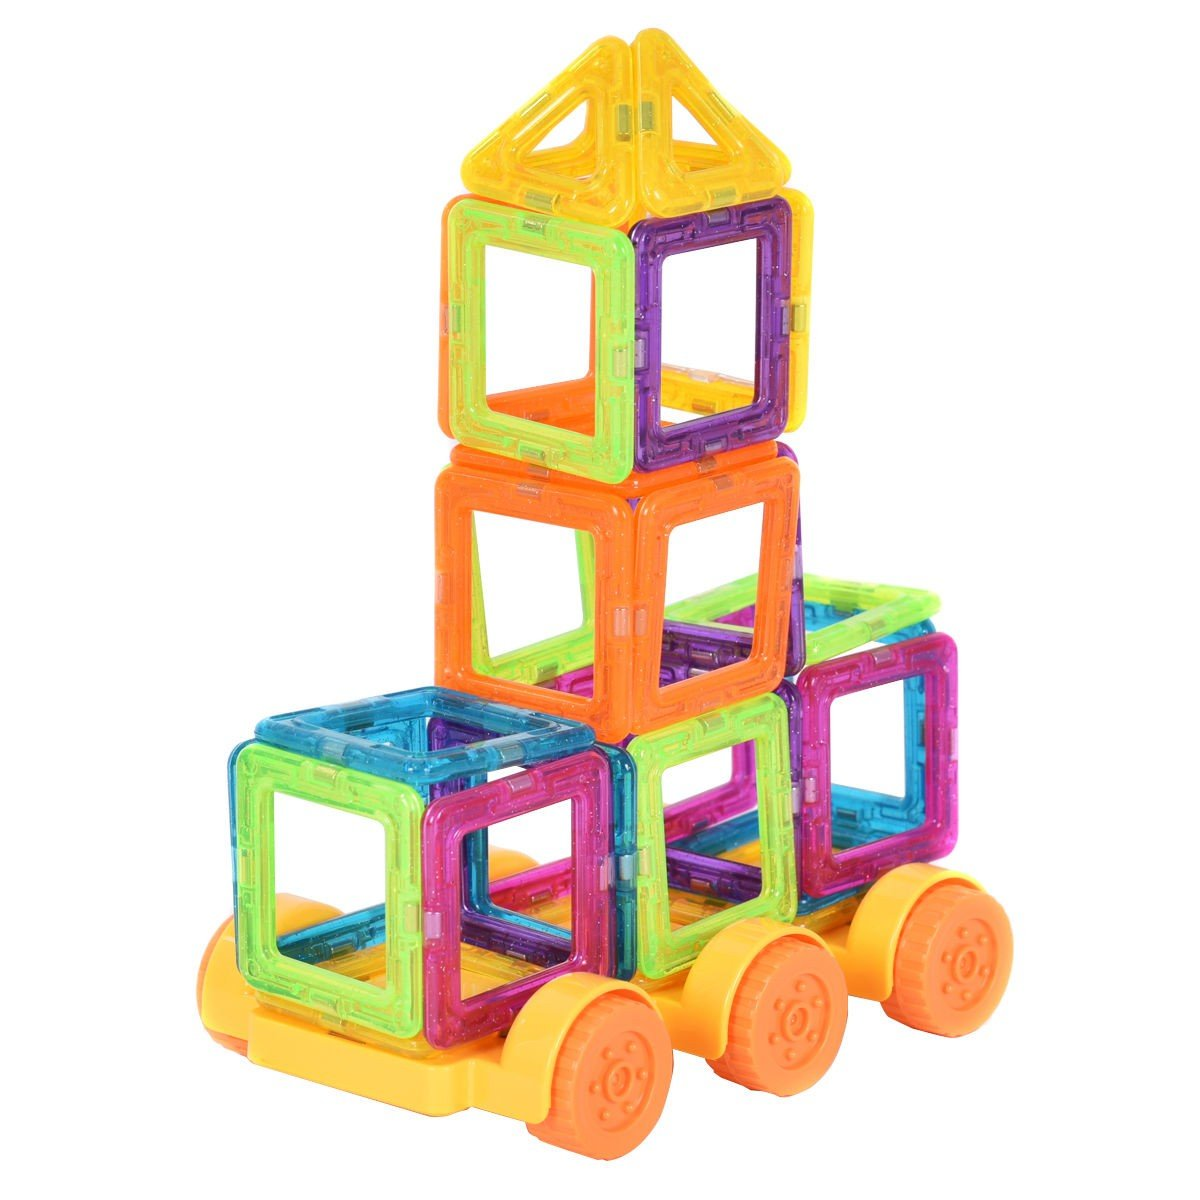 EnjoyShop 158 pcs Magical Magnetic Construction Building Blocks Smooth Interface and Good Abrasion Resistance for Durability by EnjoyShop (Image #3)